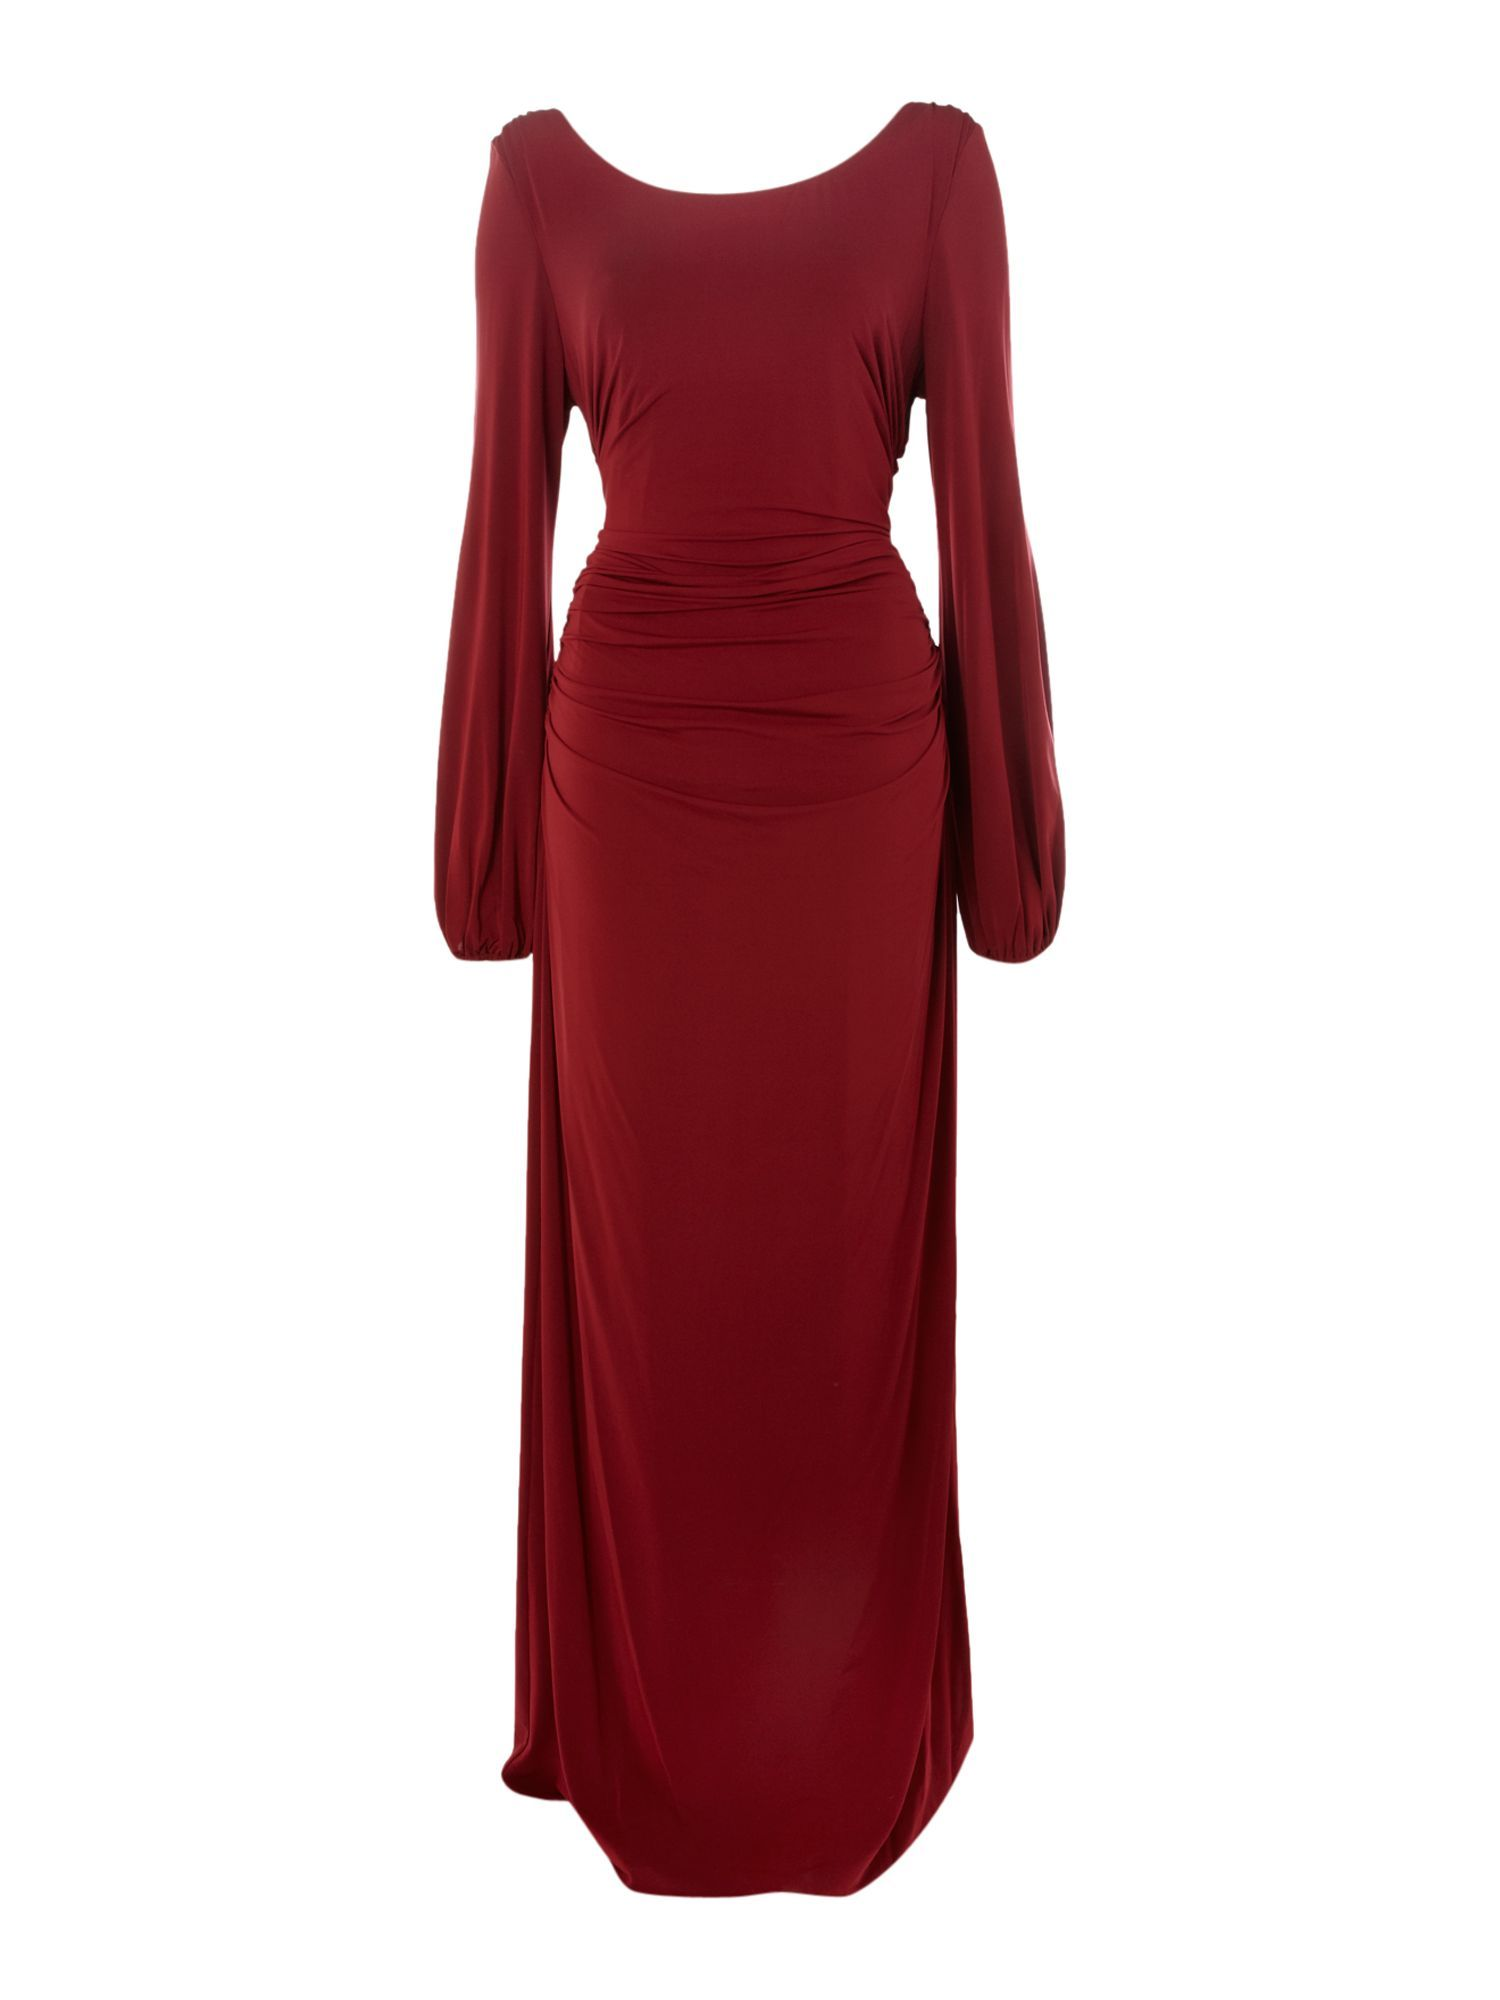 Kneelength dress info jersey solid color deep neckline lamé